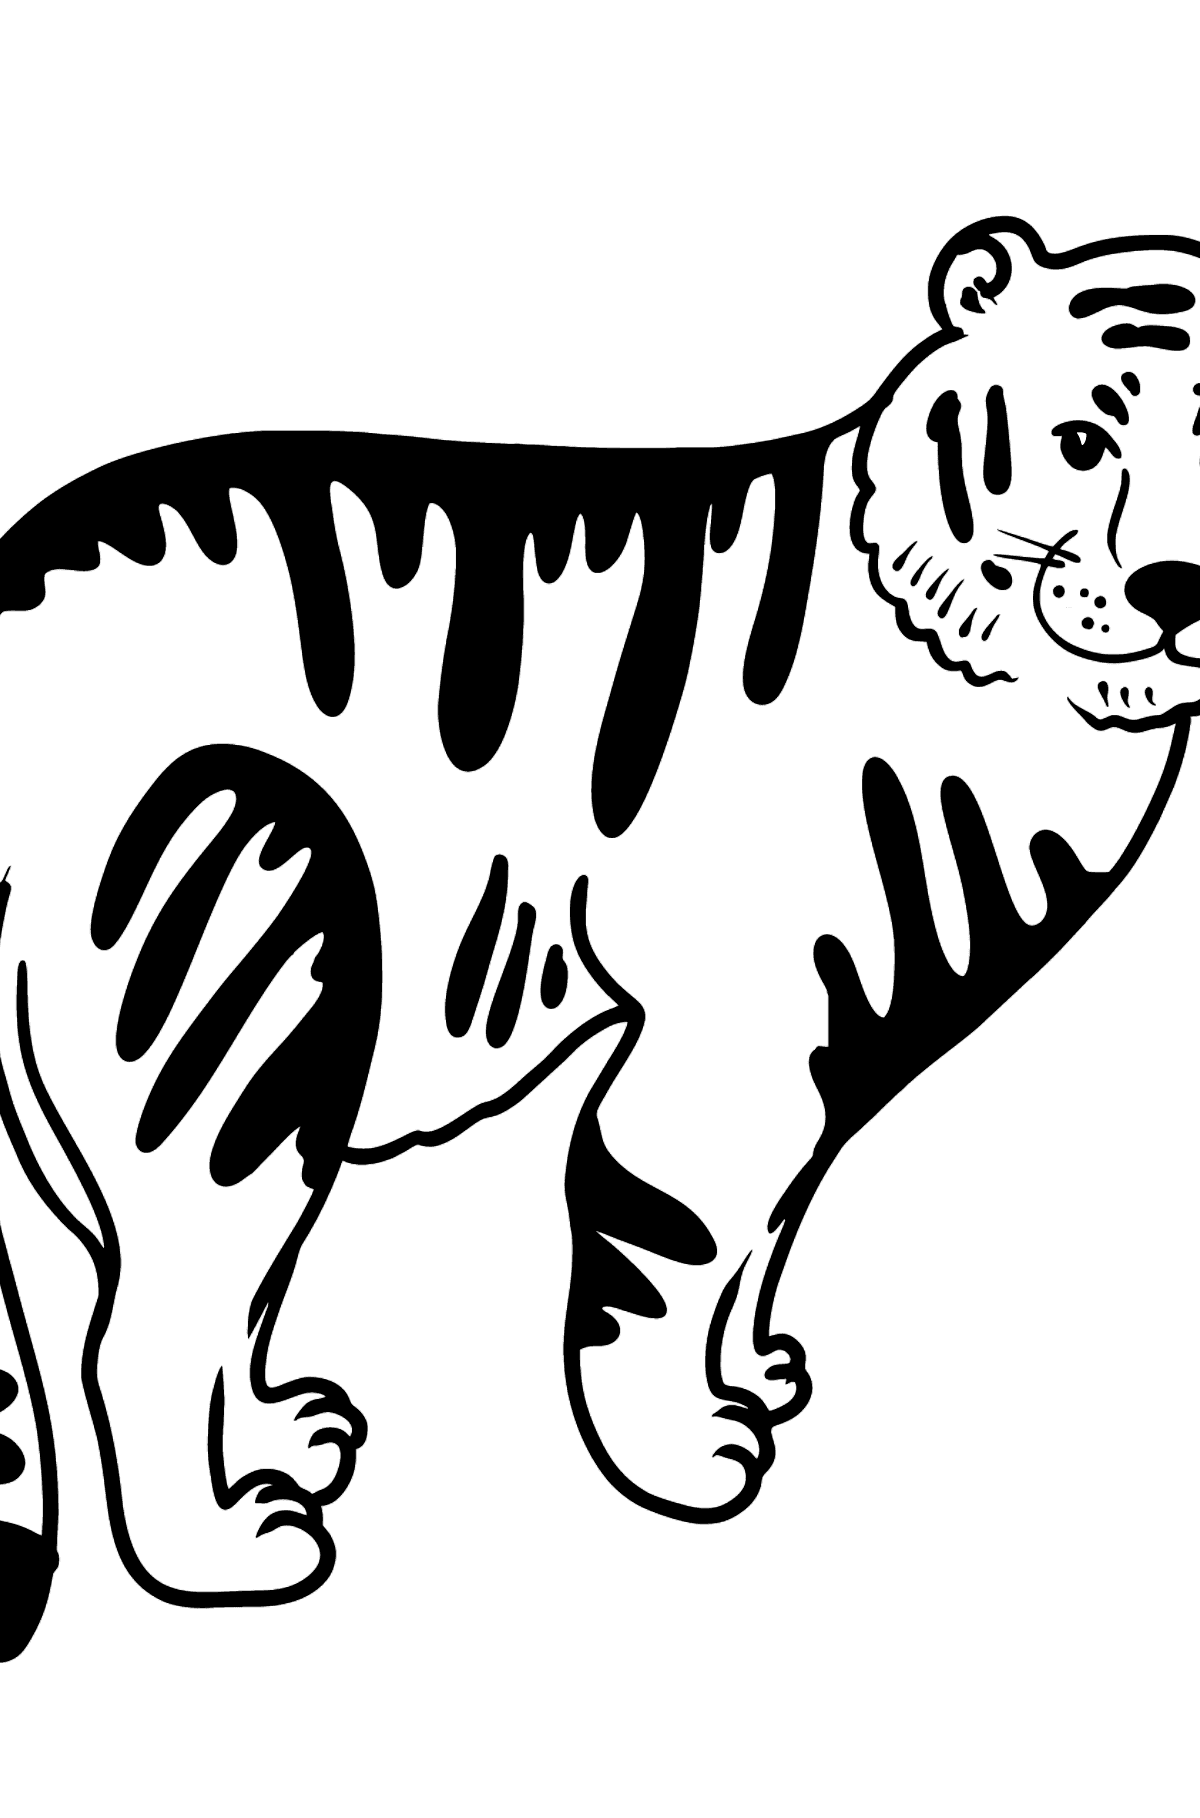 Tiger coloring page - Coloring Pages for Kids